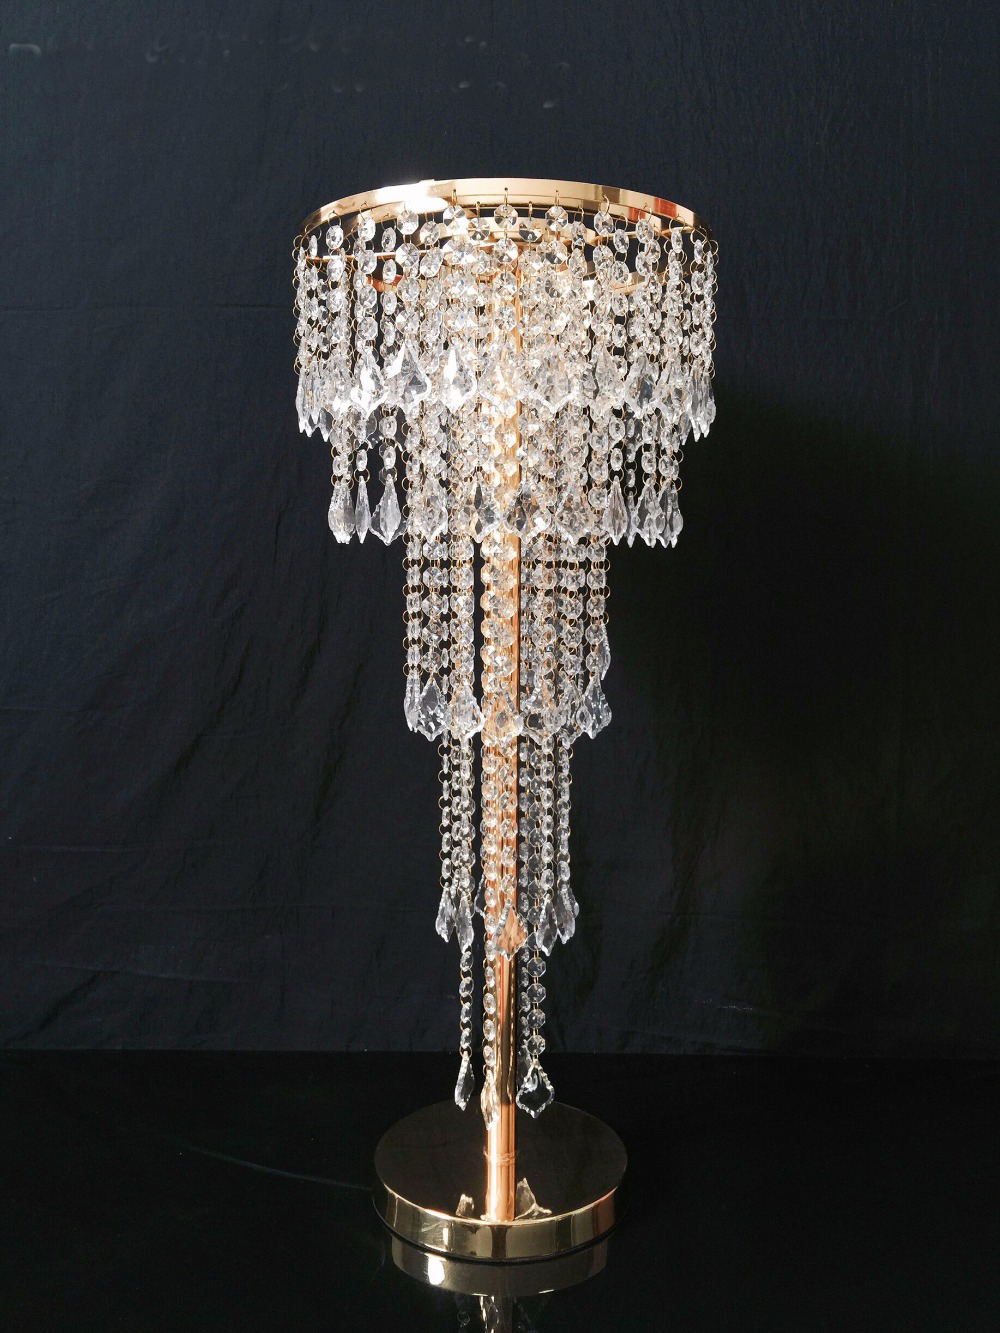 Wedding T Station Decorations Gold Table Centerpiece Flower Stand 5 Tiers Crystal Chandelier with beads strands Wedding PropsWedding T Station Decorations Gold Table Centerpiece Flower Stand 5 Tiers Crystal Chandelier with beads strands Wedding Props